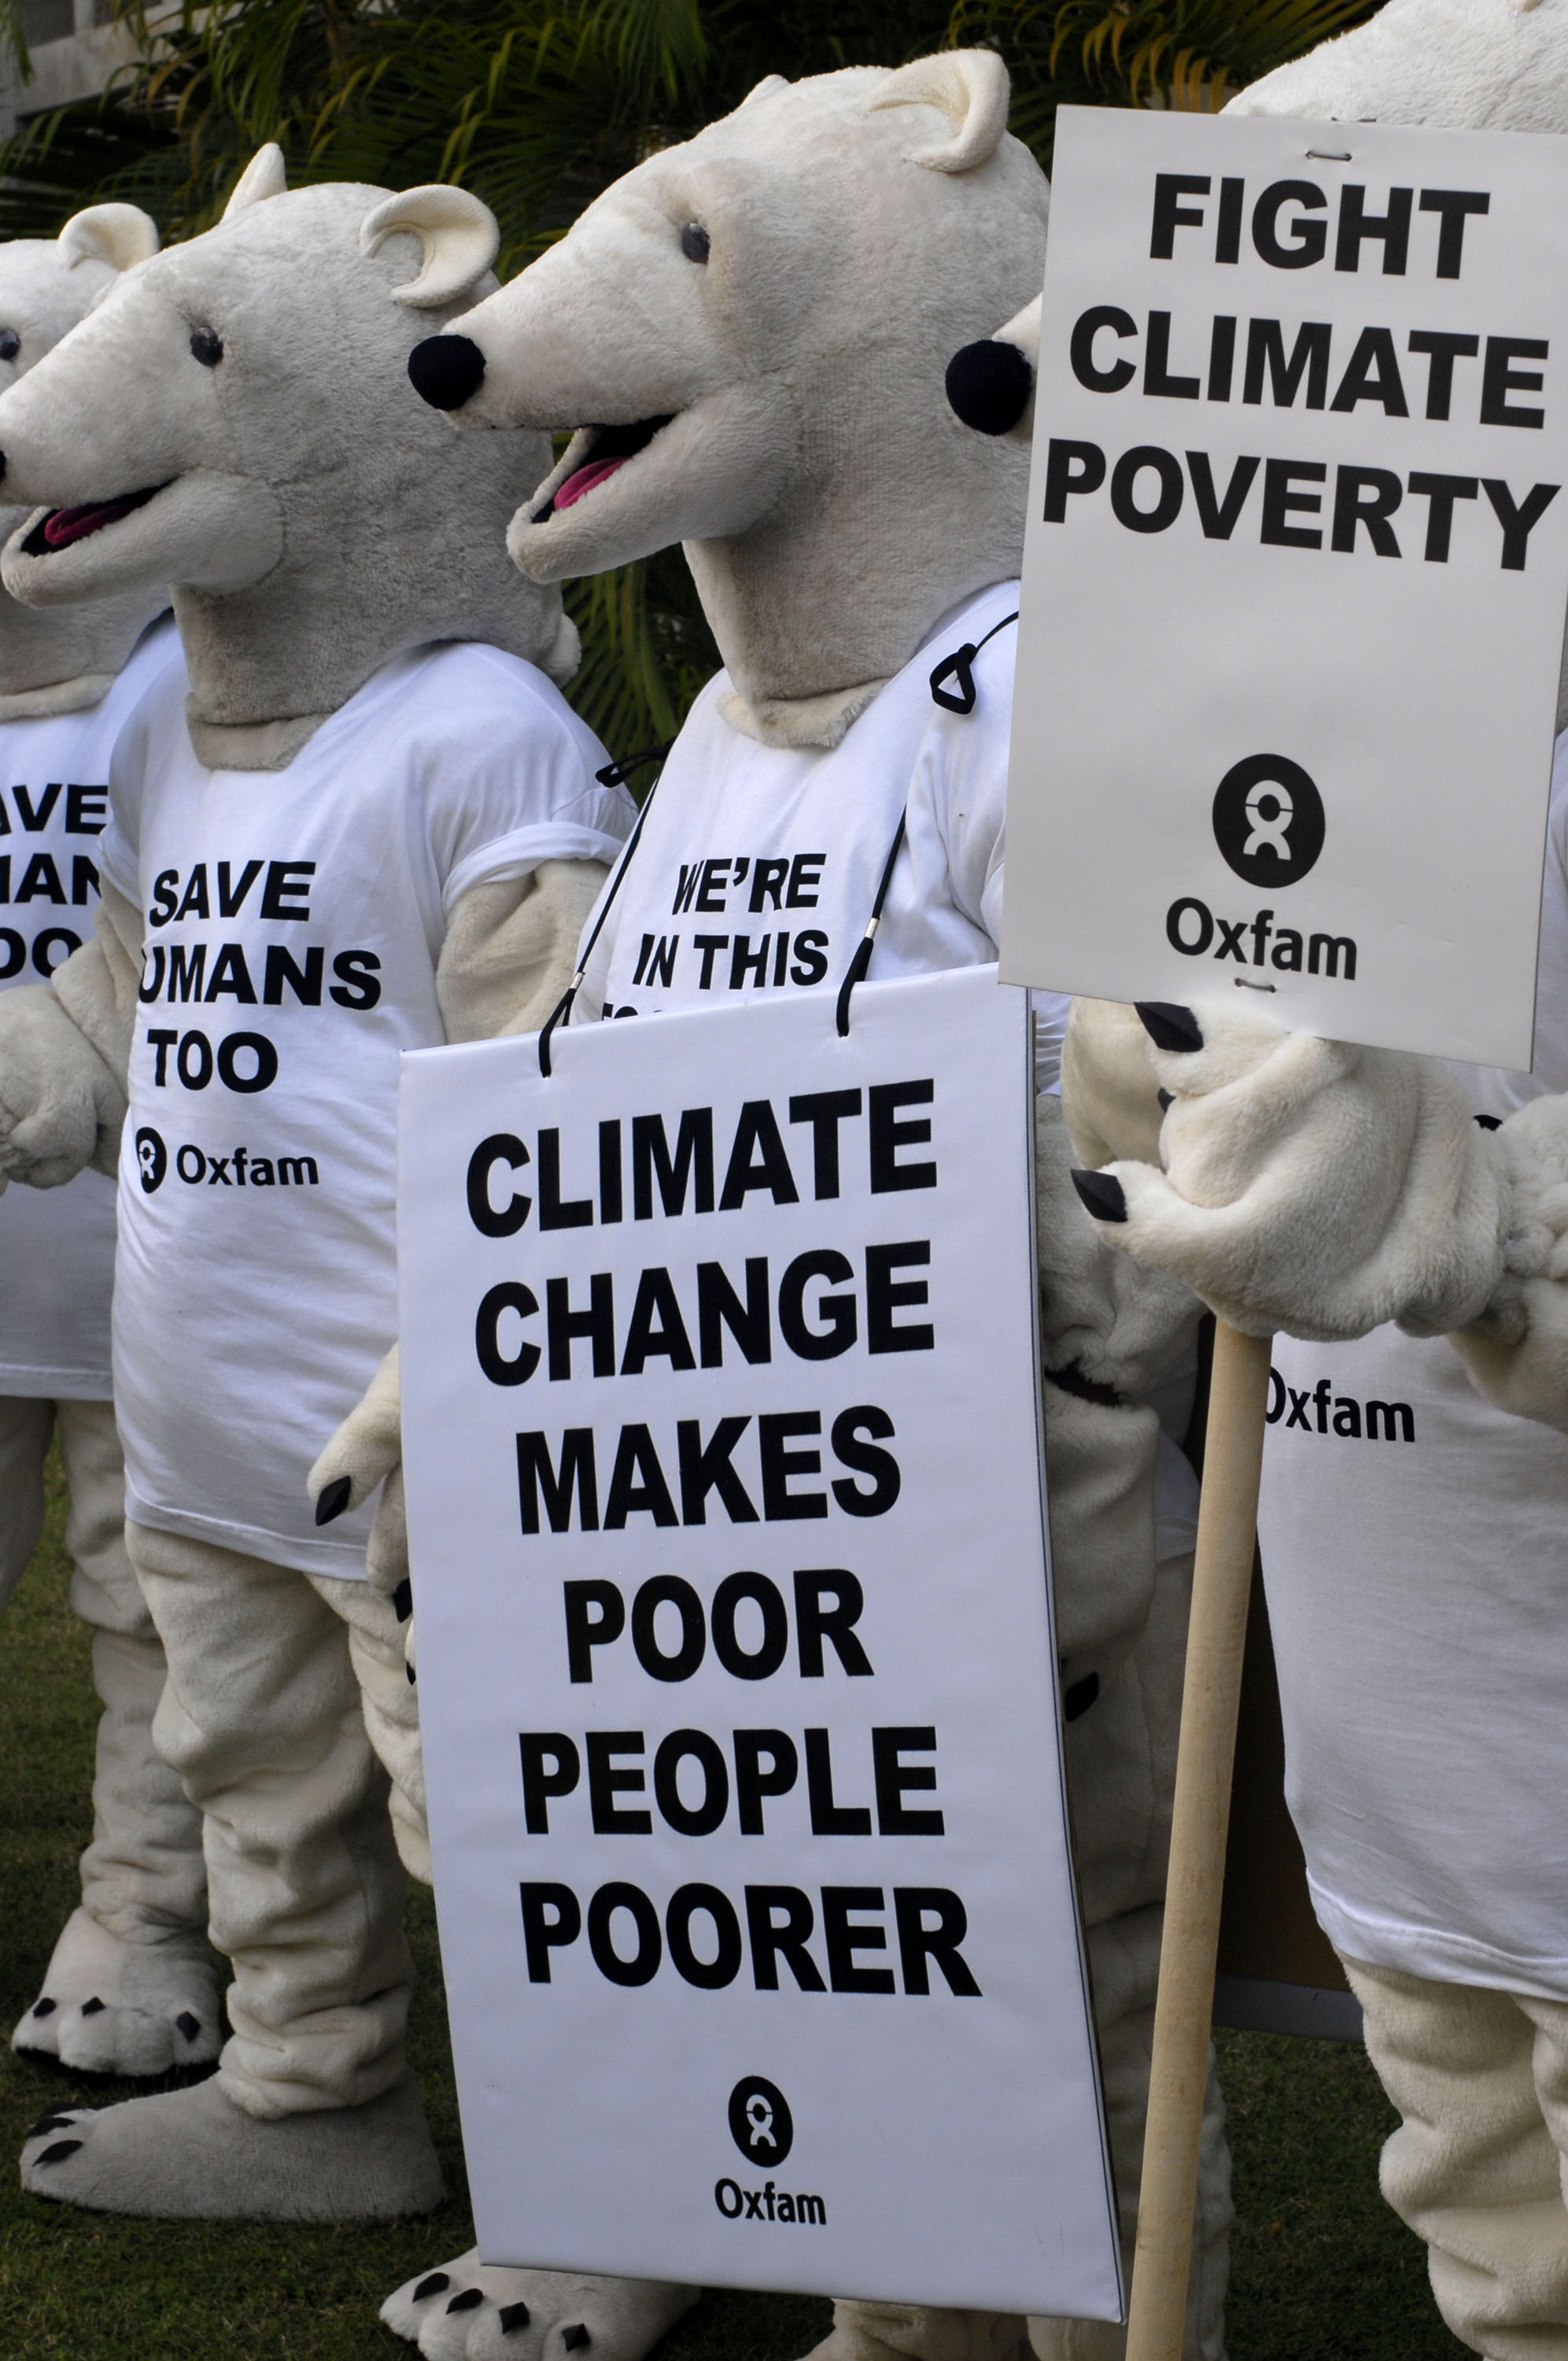 A campaign against climate change and its effects on the poor.